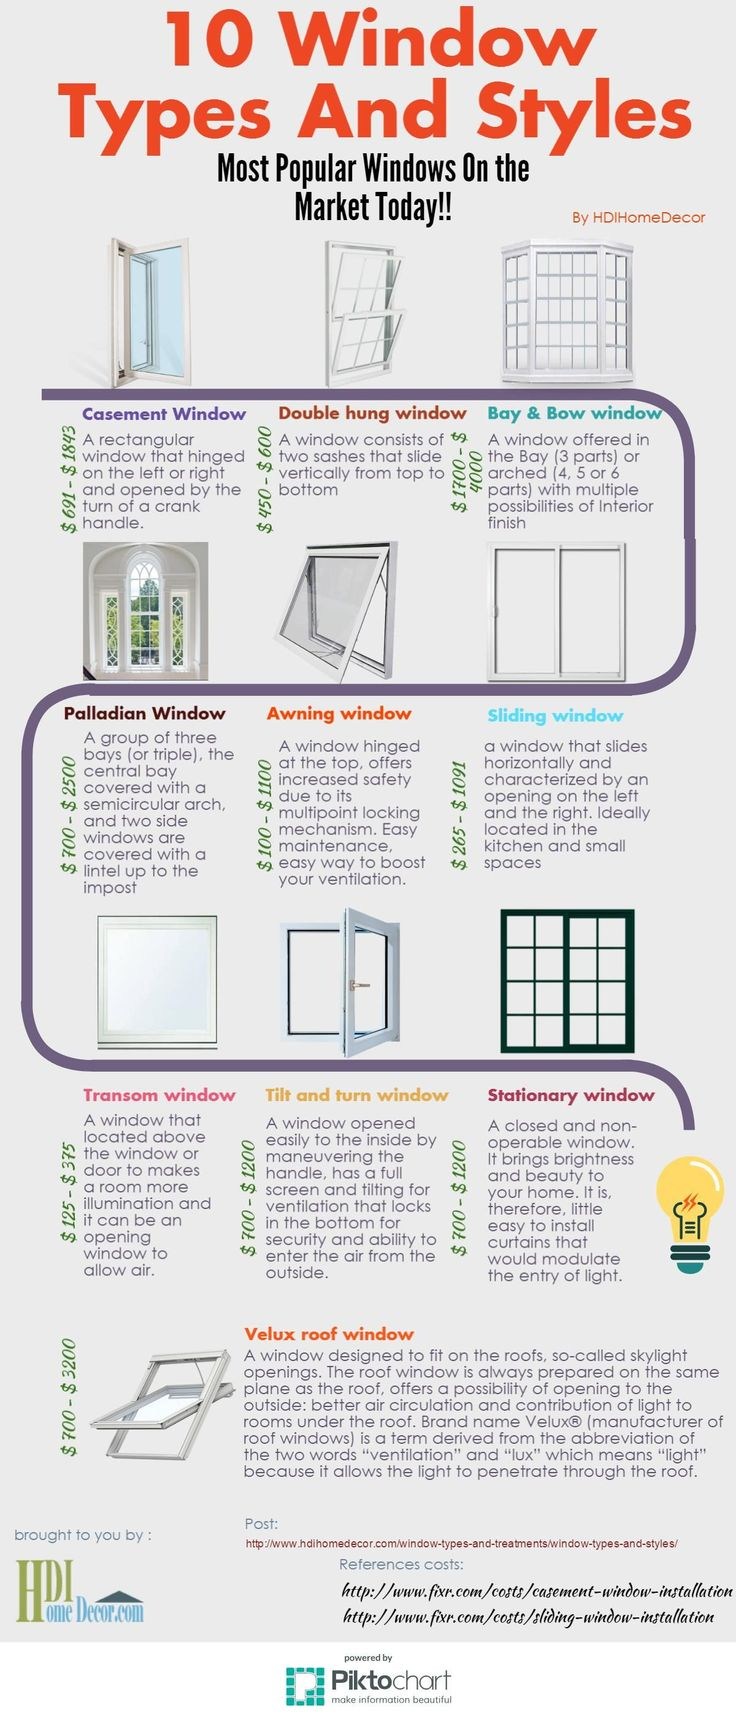 Window pane types - Top 10 Window Types And Styles Common Designs In Homes Today